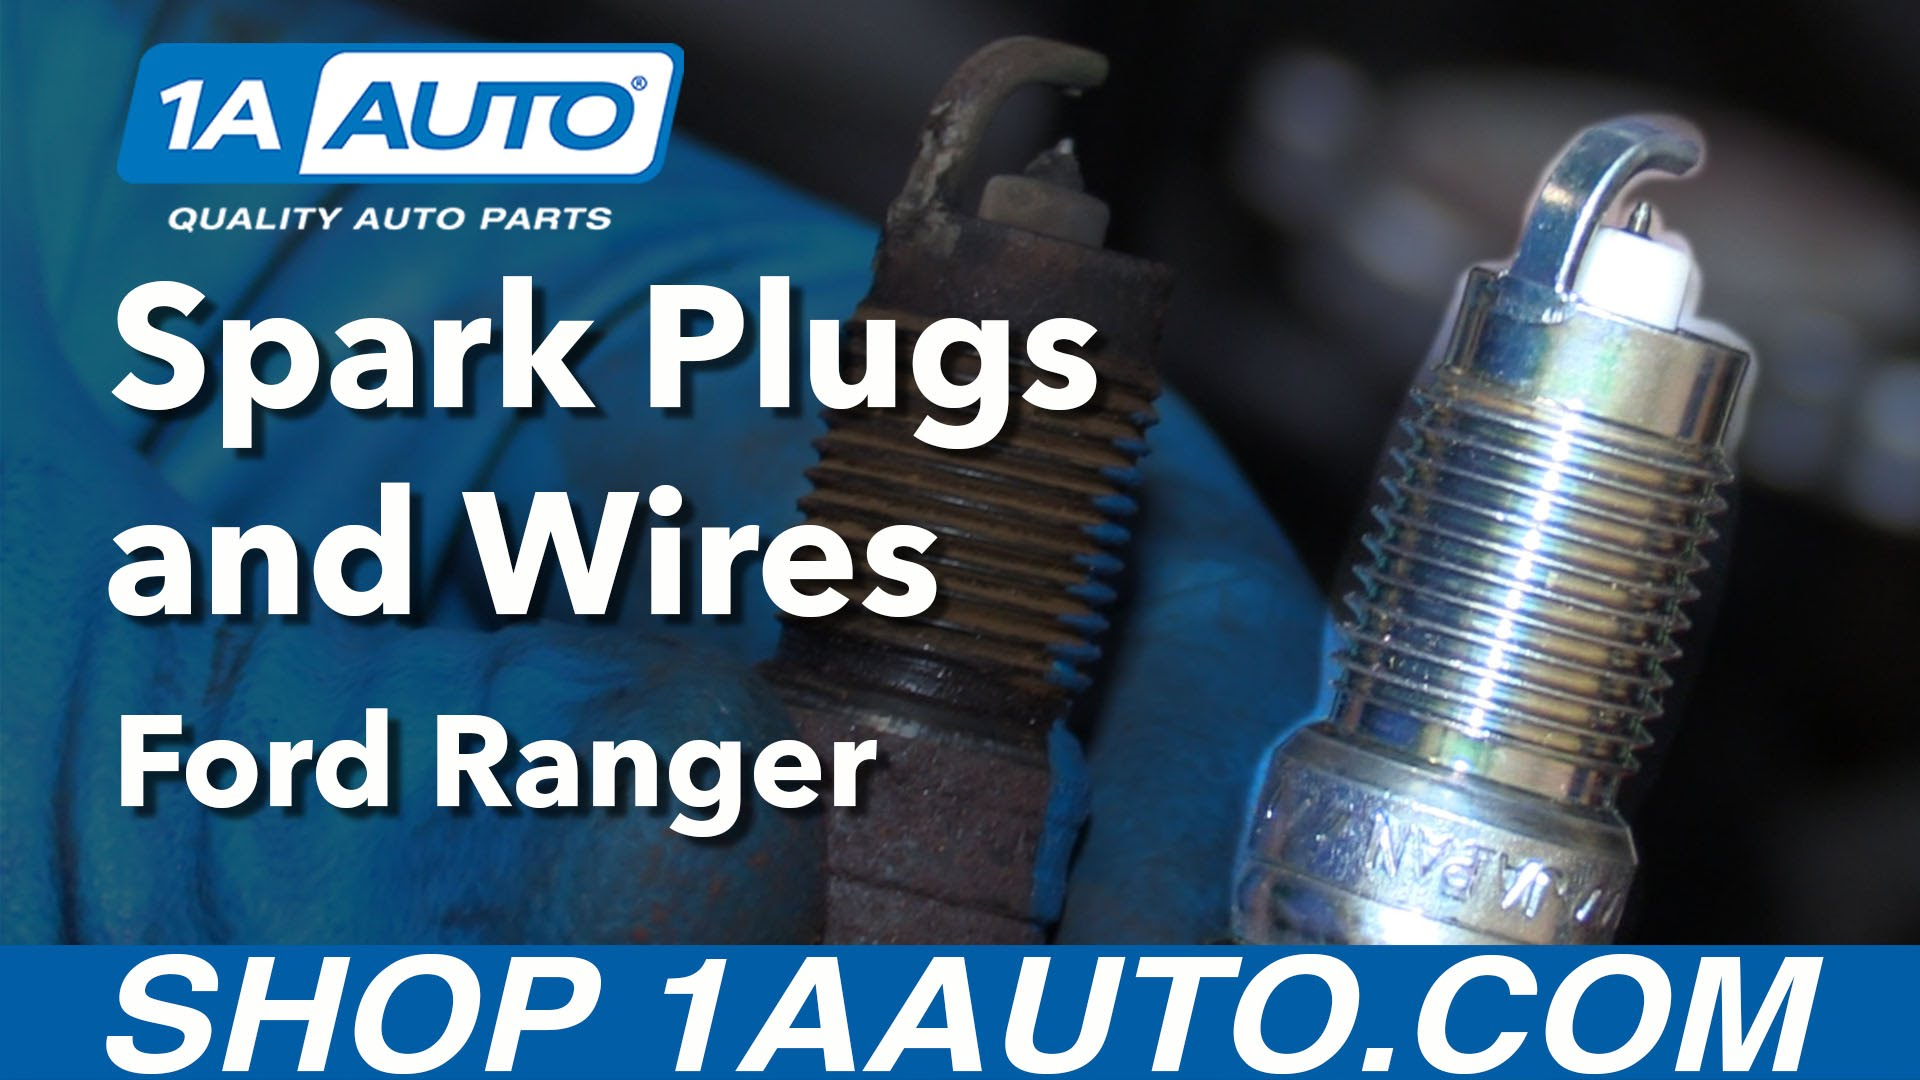 How to Replace Spark Plugs and Wires 98-12 Ford Ranger 4.0L V6 | 1A  Ford Spark Plug Wiring Diagram on 2003 ford explorer cylinder diagram, 2002 ford explorer spark plug wire diagram, 2005 ford freestar spark plug wire diagram, ford f250 spark plugs, 2002 ford windstar spark plug diagram, 1998 ford f-150 cooling system diagram, ford spark plug firing order, 2007 ford taurus spark plug wire diagram, 1999 ford mustang spark plug diagram, ford ranger 4.0 spark plugs, ford spark plug problems, 1992 ford f-150 vacuum diagram, ford focus spark plug wire diagram, 2006 ford taurus spark plug firing diagram, ford 4.6 engine swap wiring, ford 5.0 spark plug wiring, 97 ford explorer spark plug diagram, ford expedition spark plug diagram, 1998 ford explorer spark plug wire diagram, ford v10 spark plug repair kit,